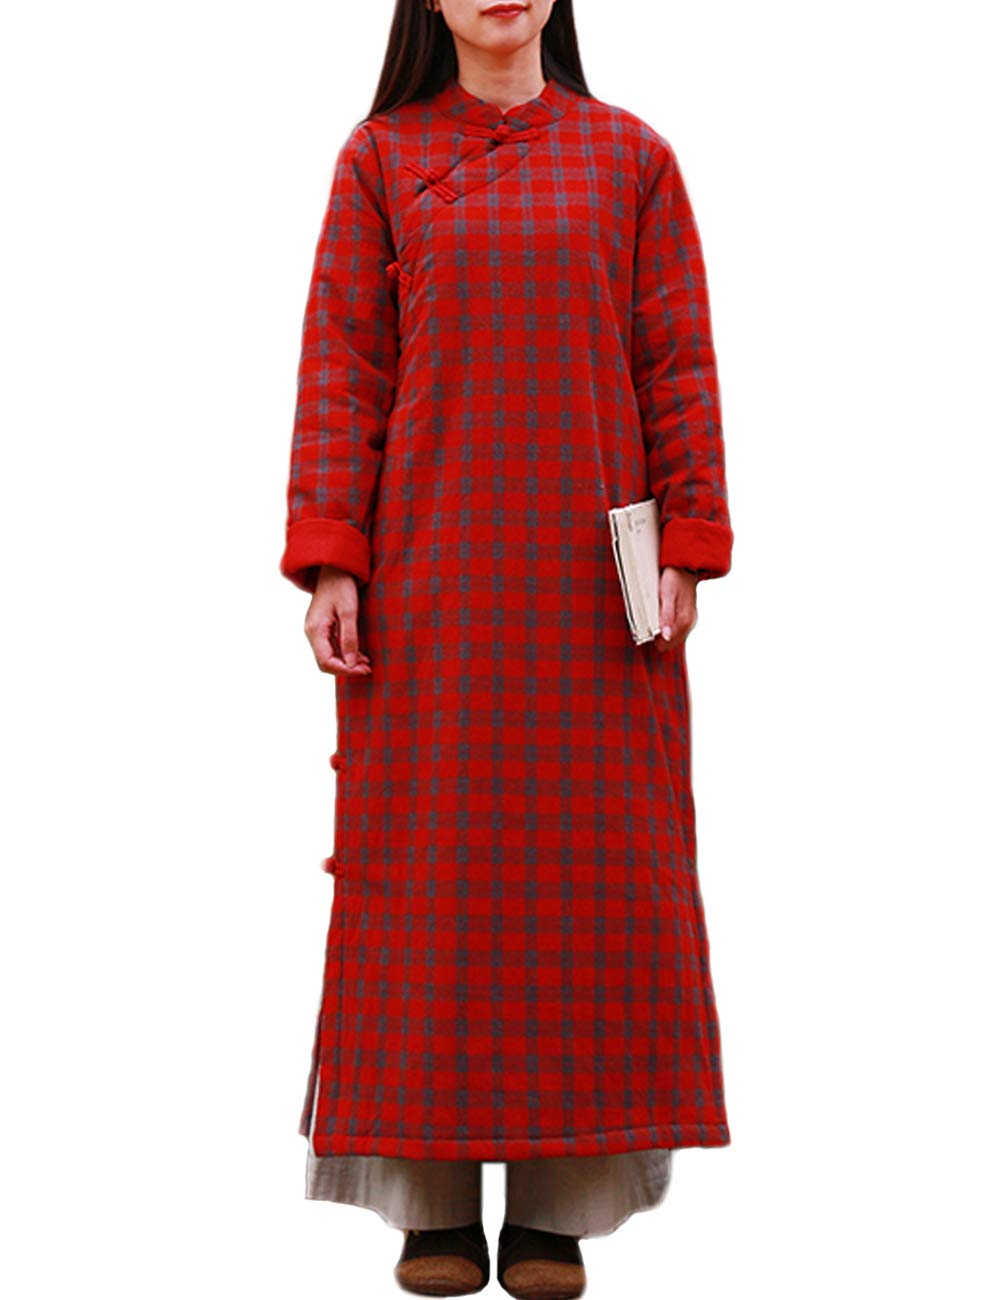 Women's Retro Chinese Qipao Quilted Cotton Red Plaid Dress Winter Warm Dresses